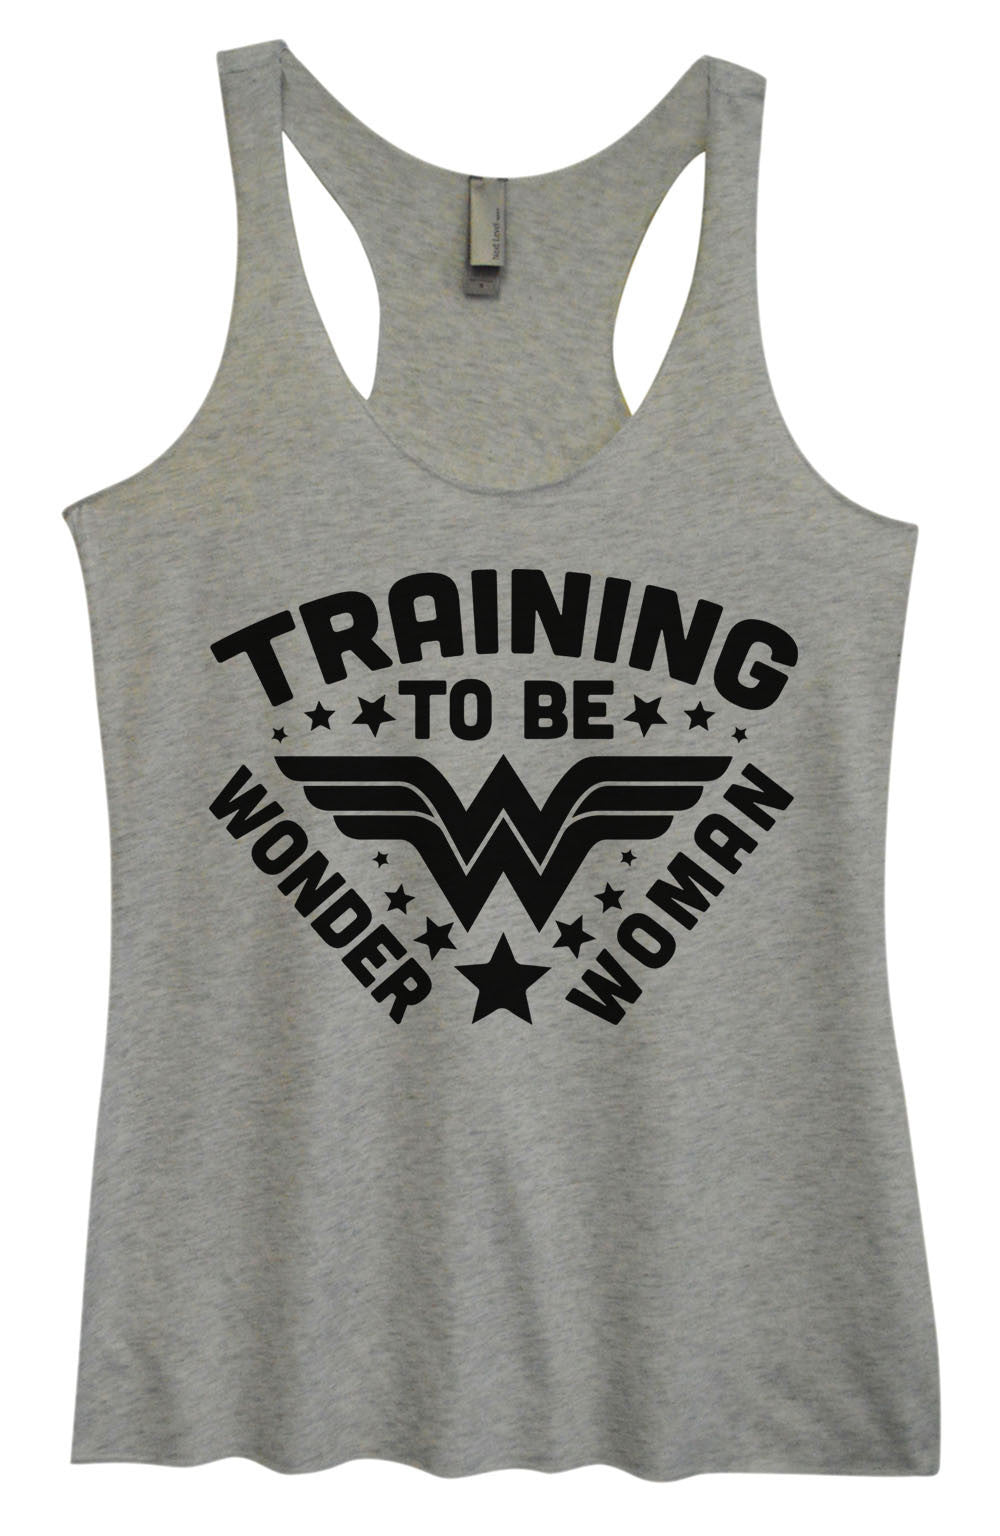 Womens Fashion Triblend Tank Top - Training To Be Wonder Woman - Tri-966 - Funny Shirts Tank Tops Burnouts and Triblends  - 2